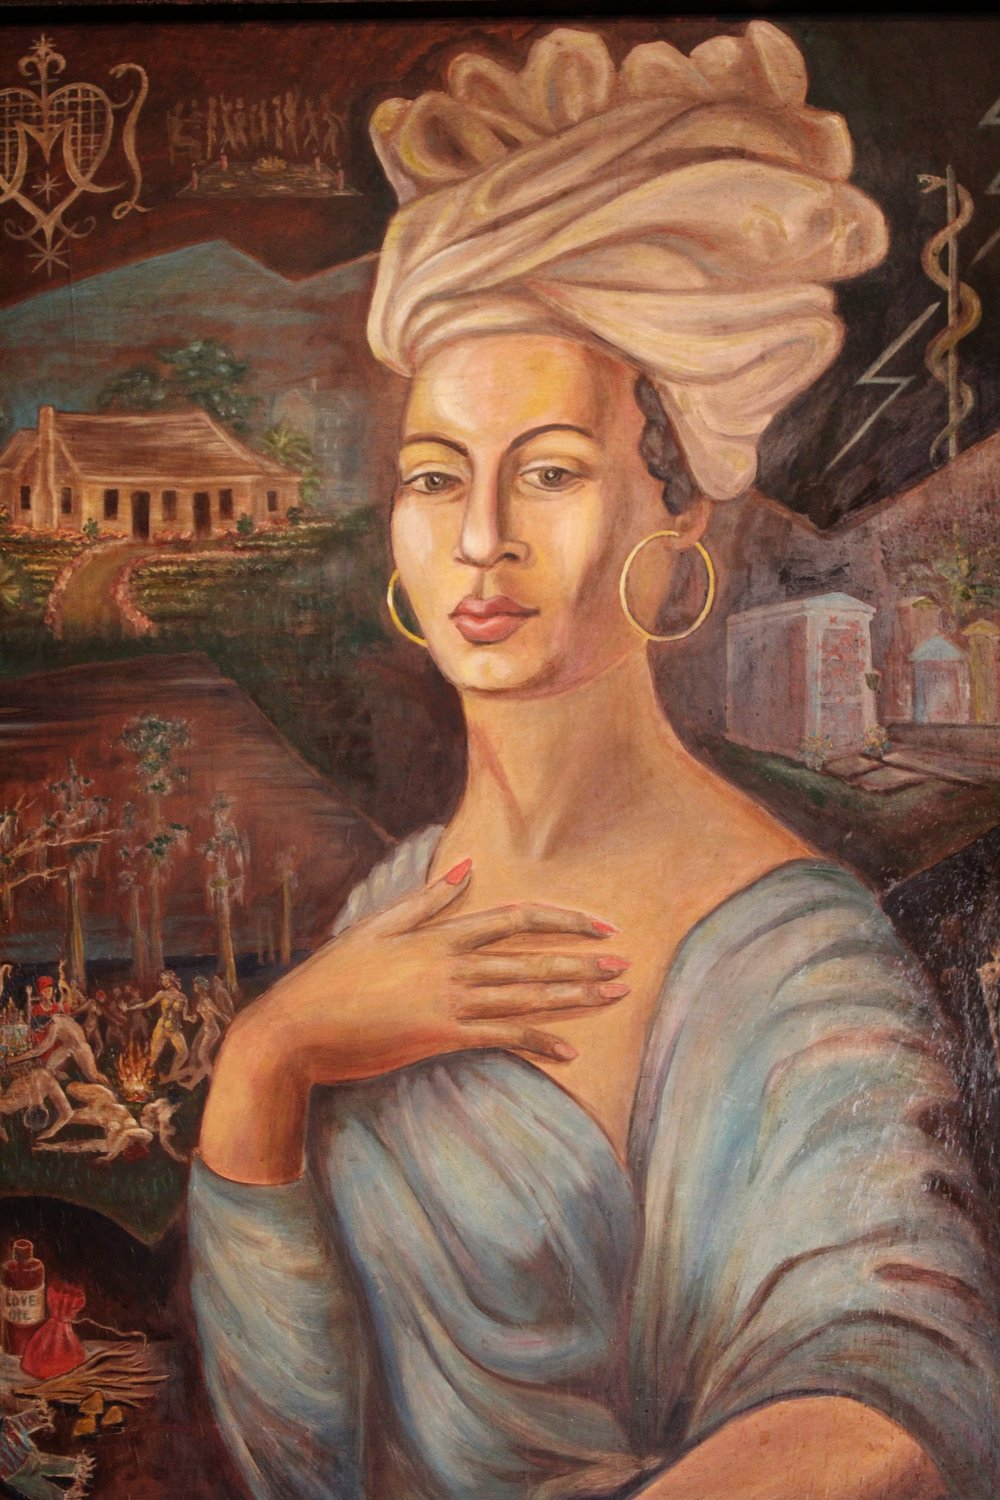 Marie Laveau Paining in New Orleans